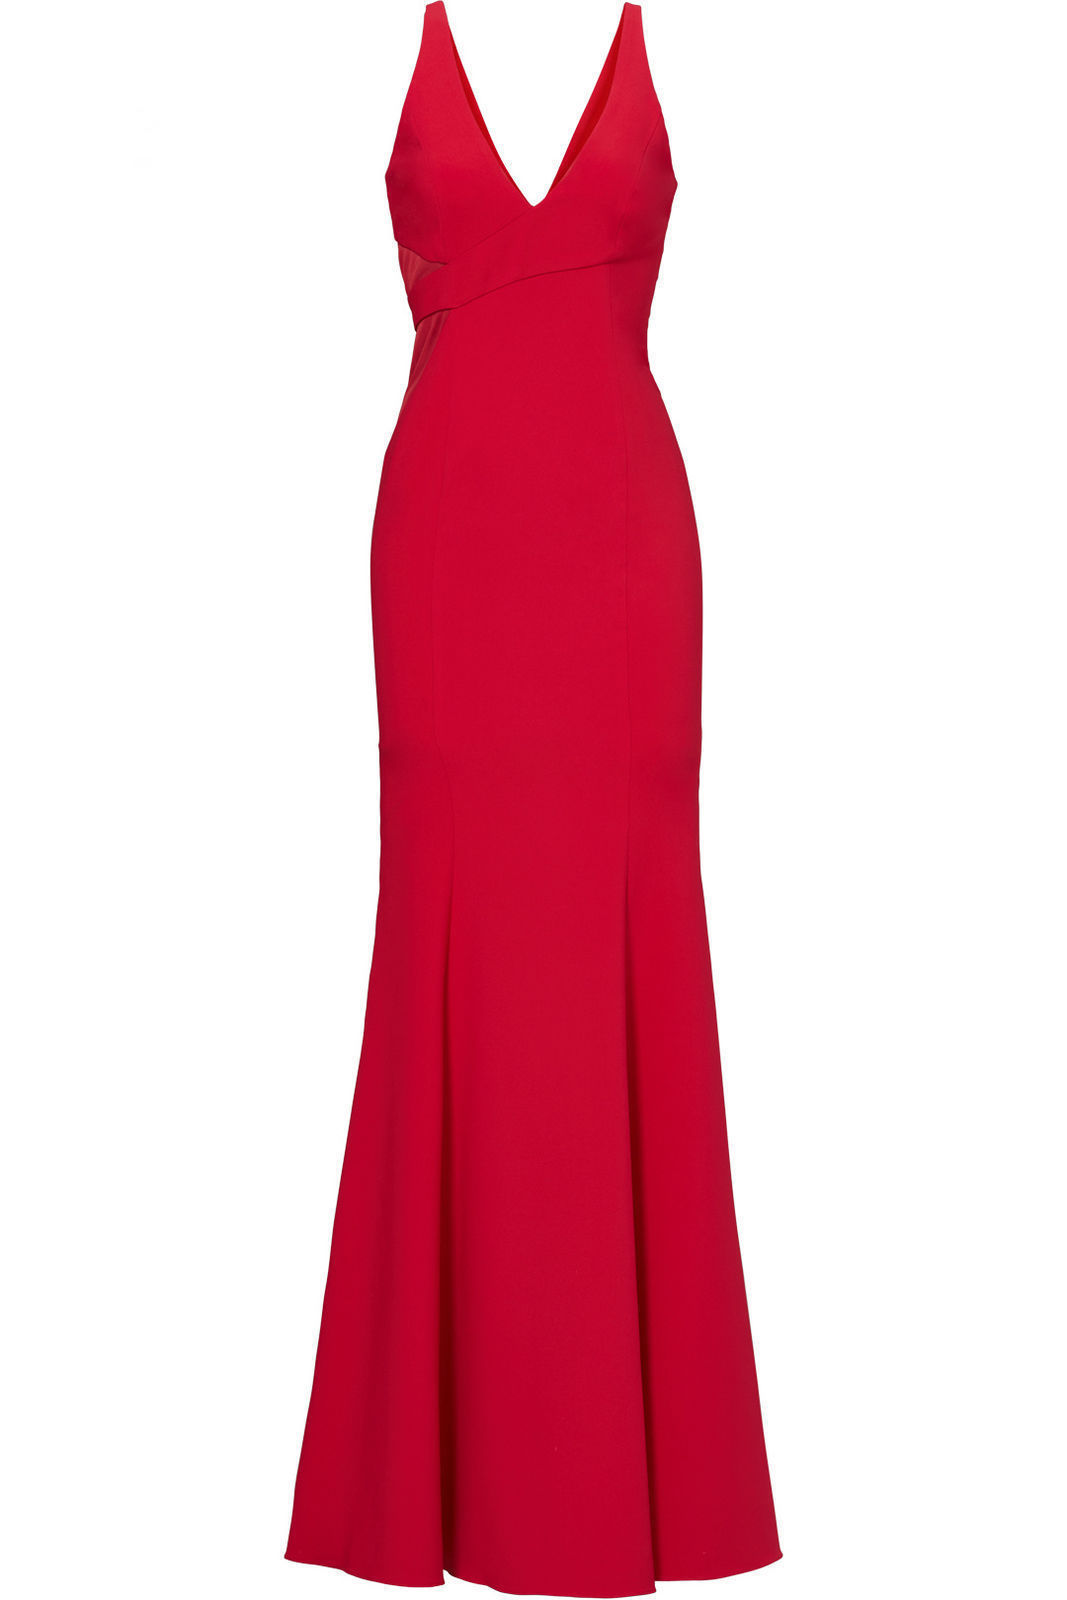 37726be8332 Details about Jay Godfrey Red Women s Size 6 V-Neck Mermaid Mesh Gown Dress   485-  151